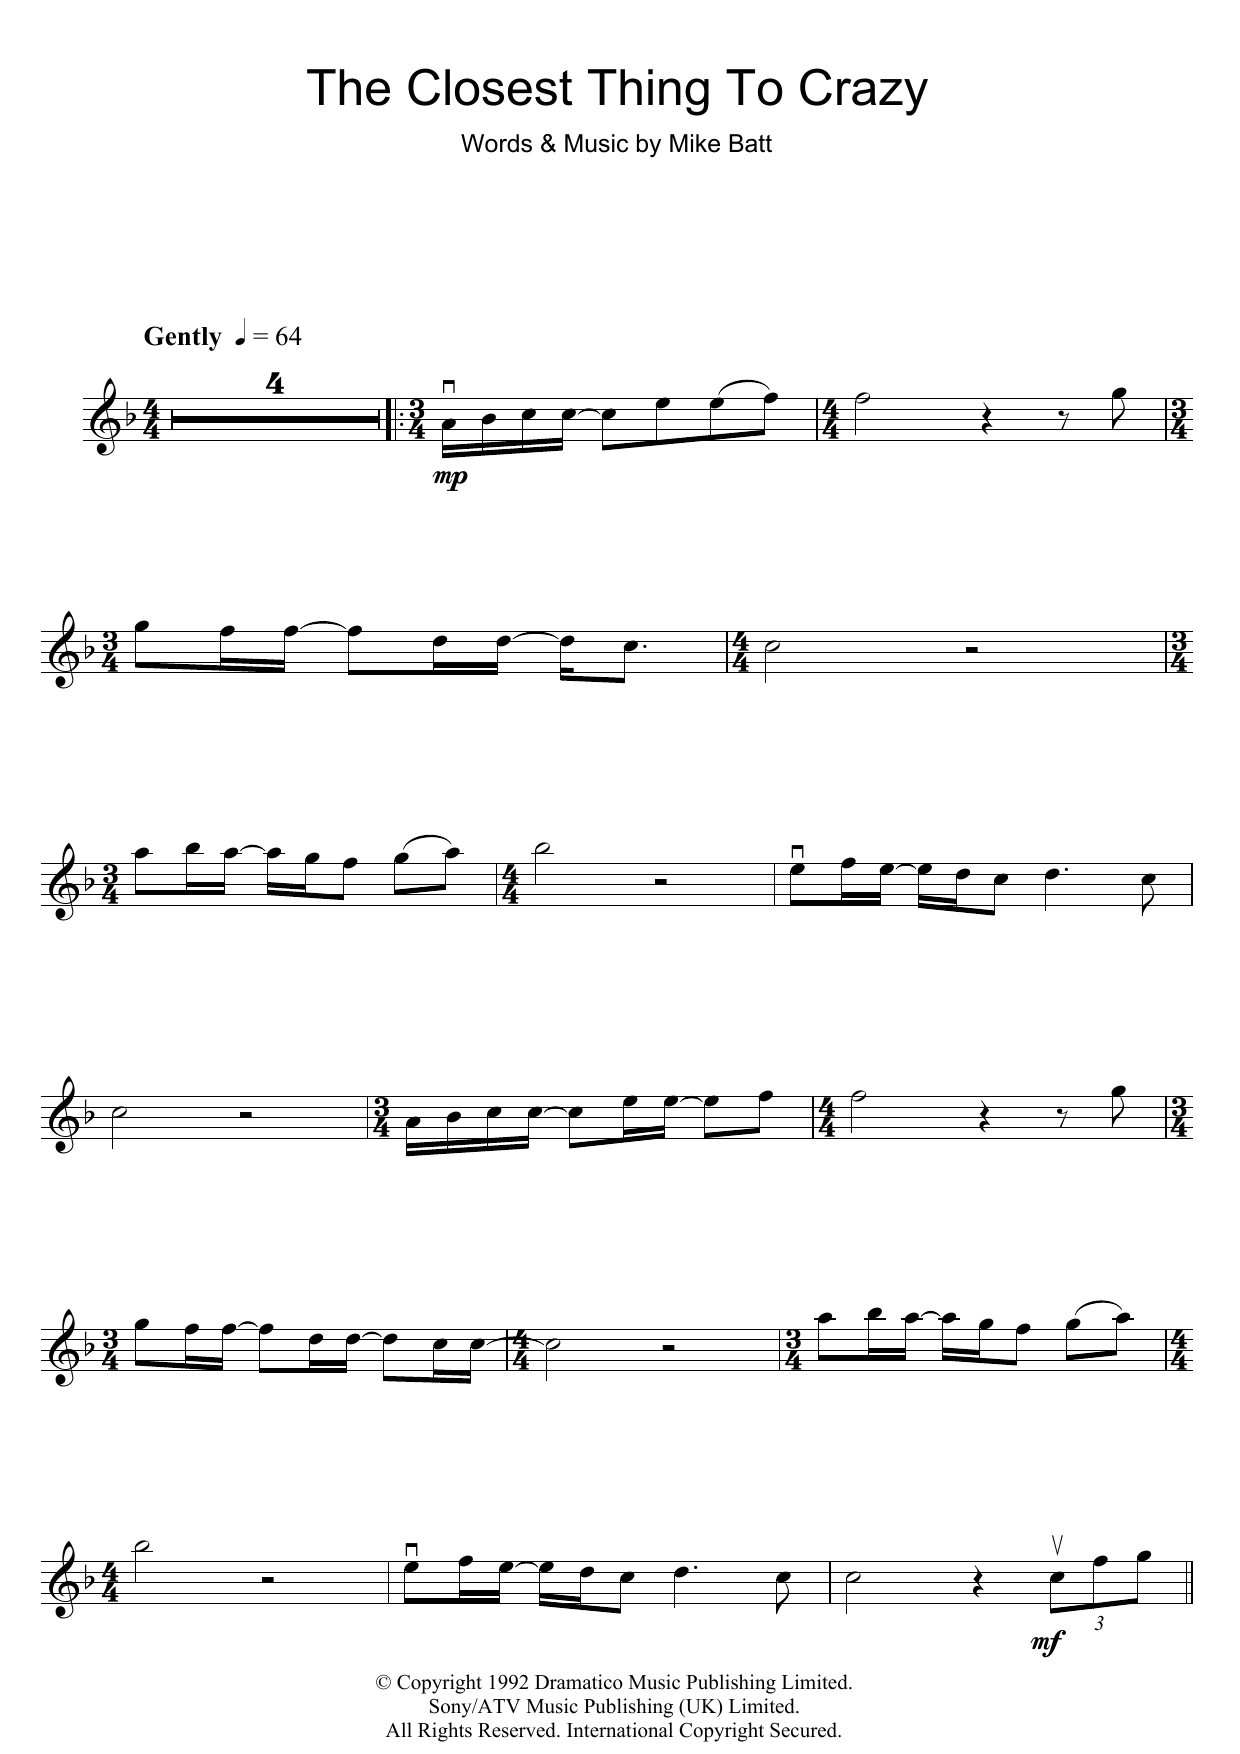 The Closest Thing To Crazy Sheet Music